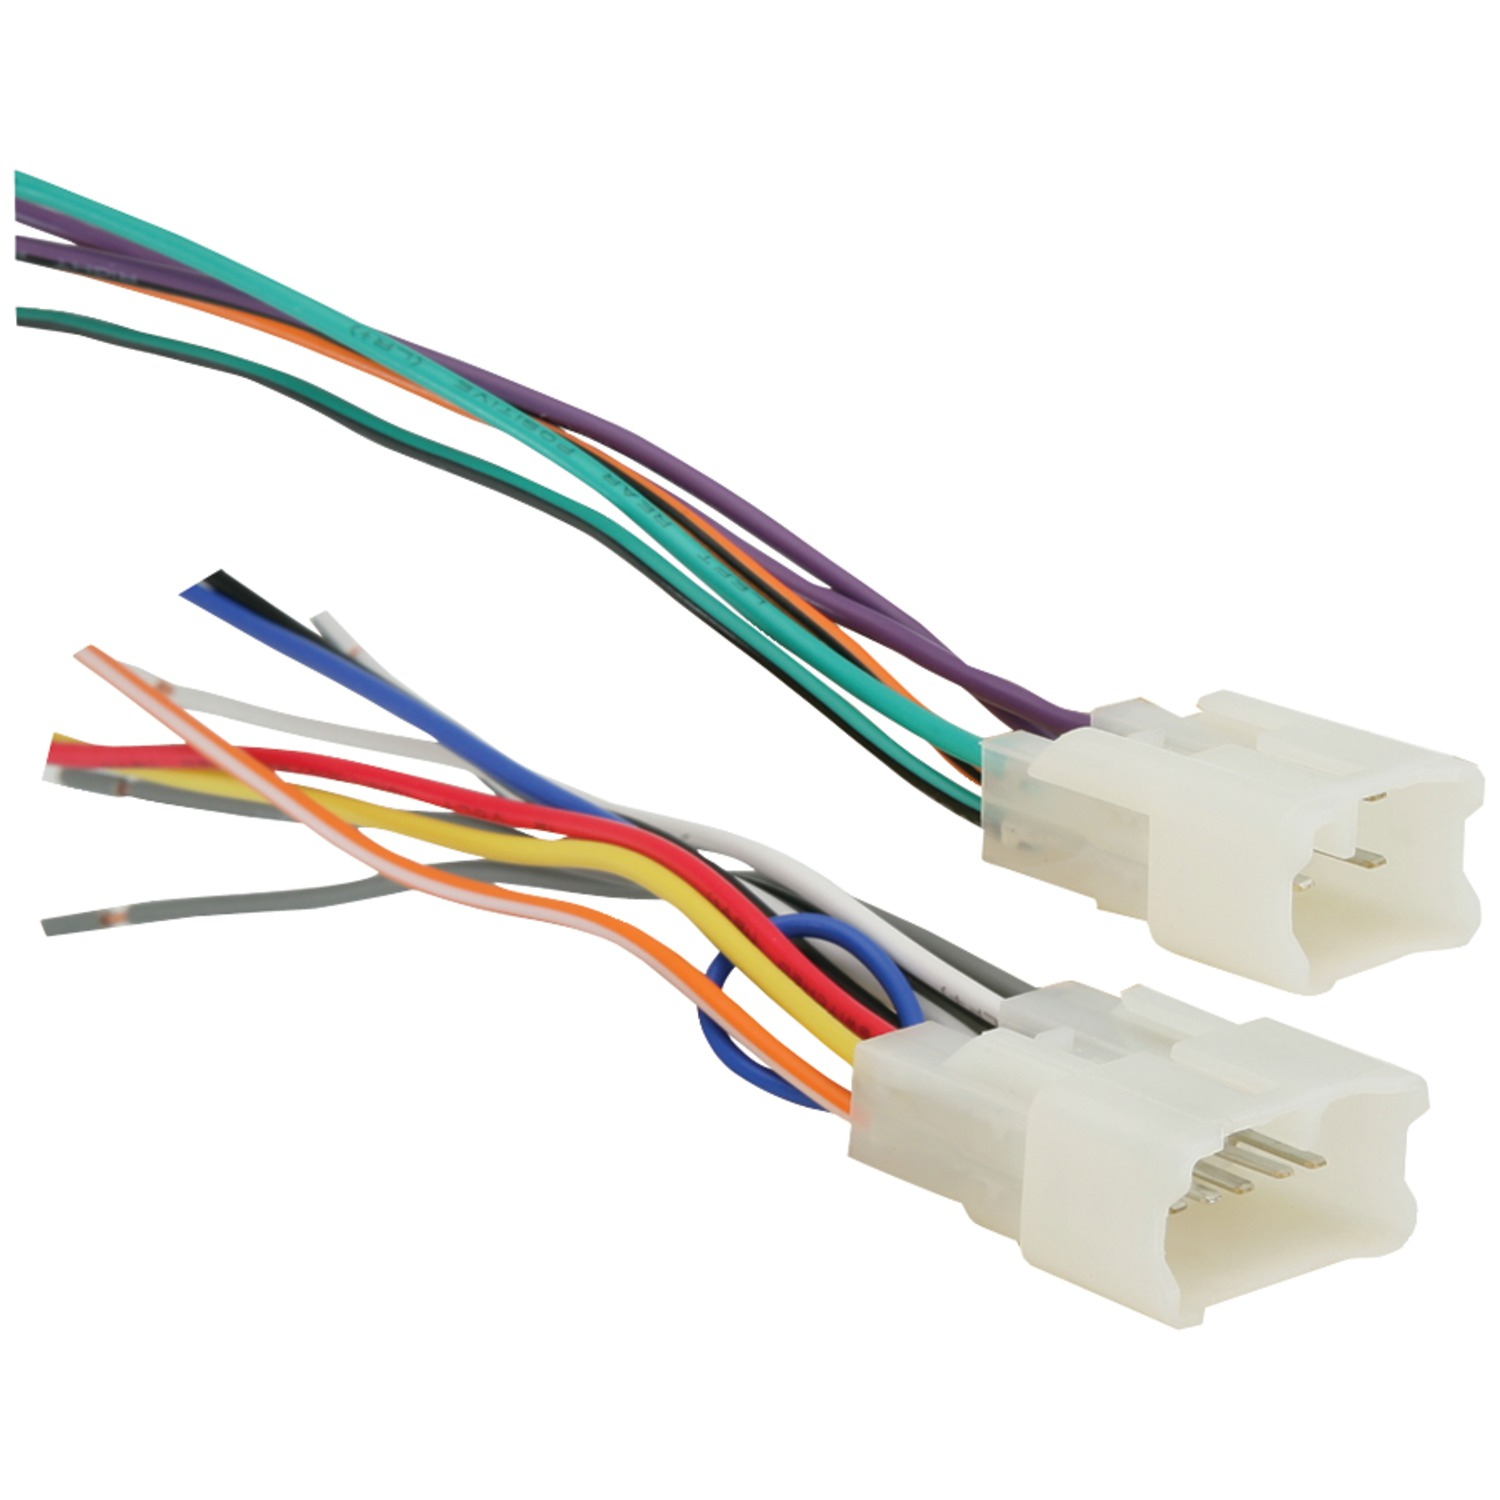 Car Wiring Harness 87 Honda Accord Online Wiring Diagram Honda Accord Stereo Wiring Diagram Car Wiring Harness 87 Honda Accord